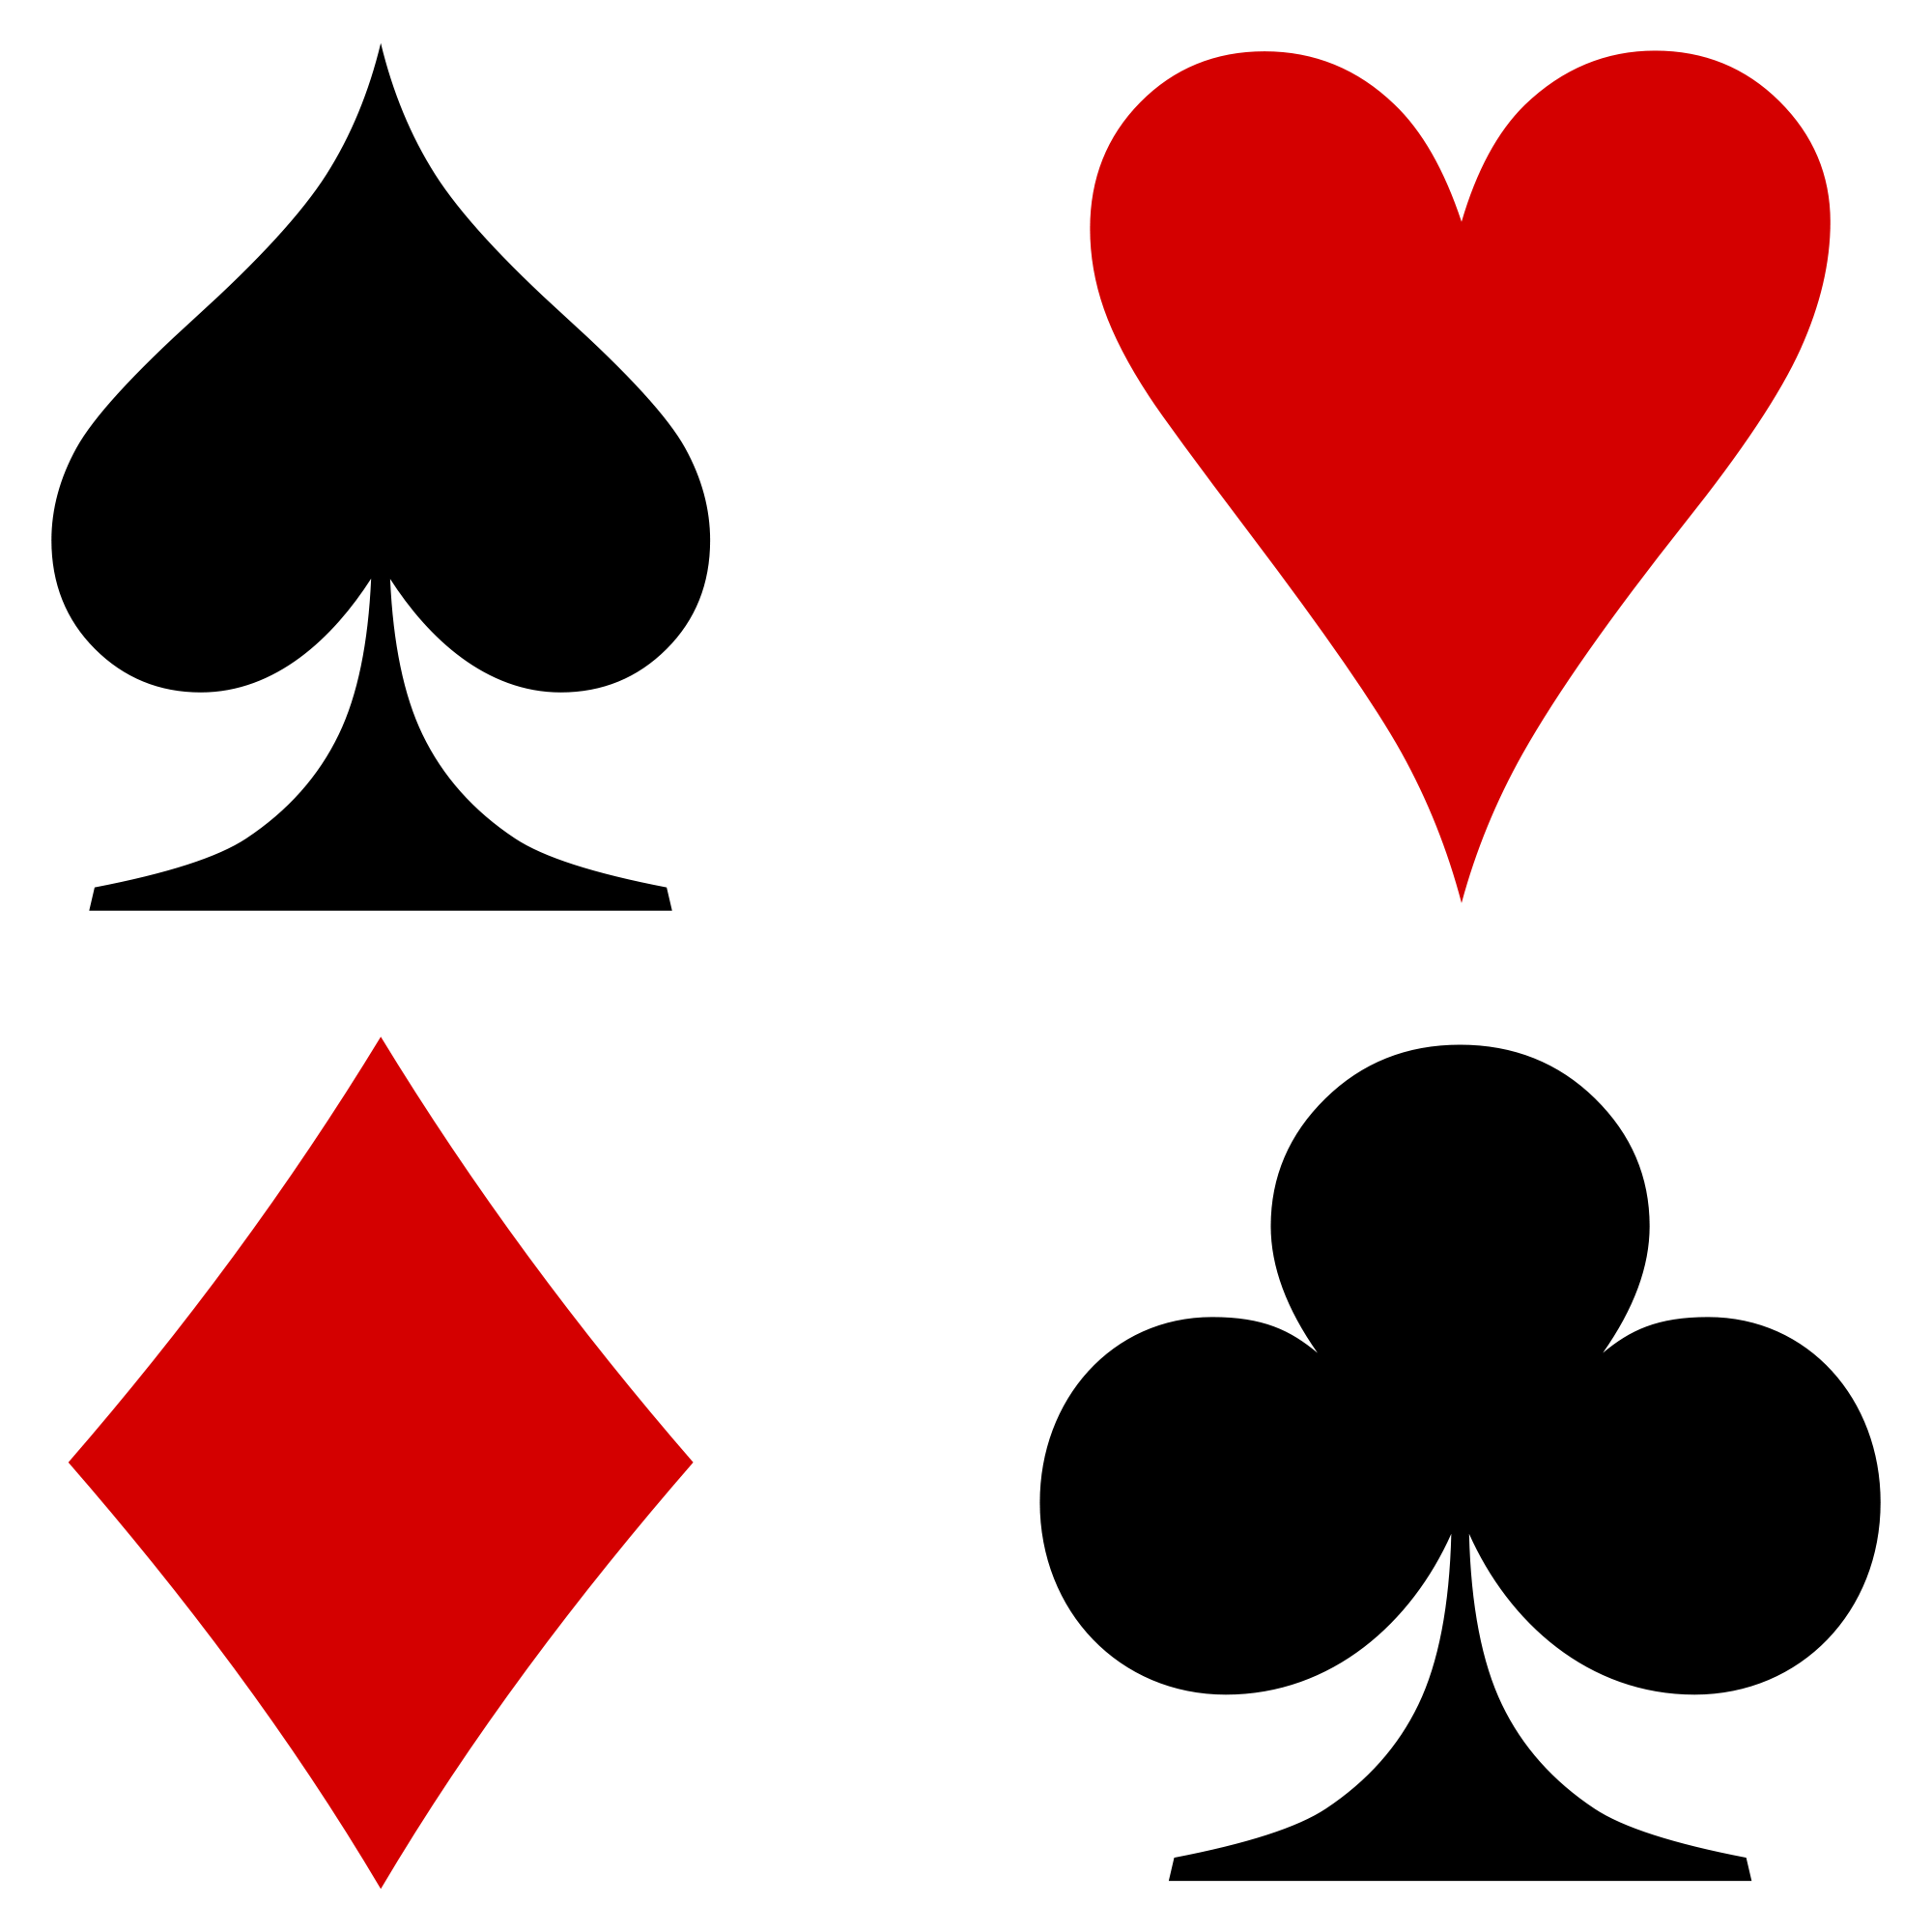 Playing cards symbols png. Free card images download